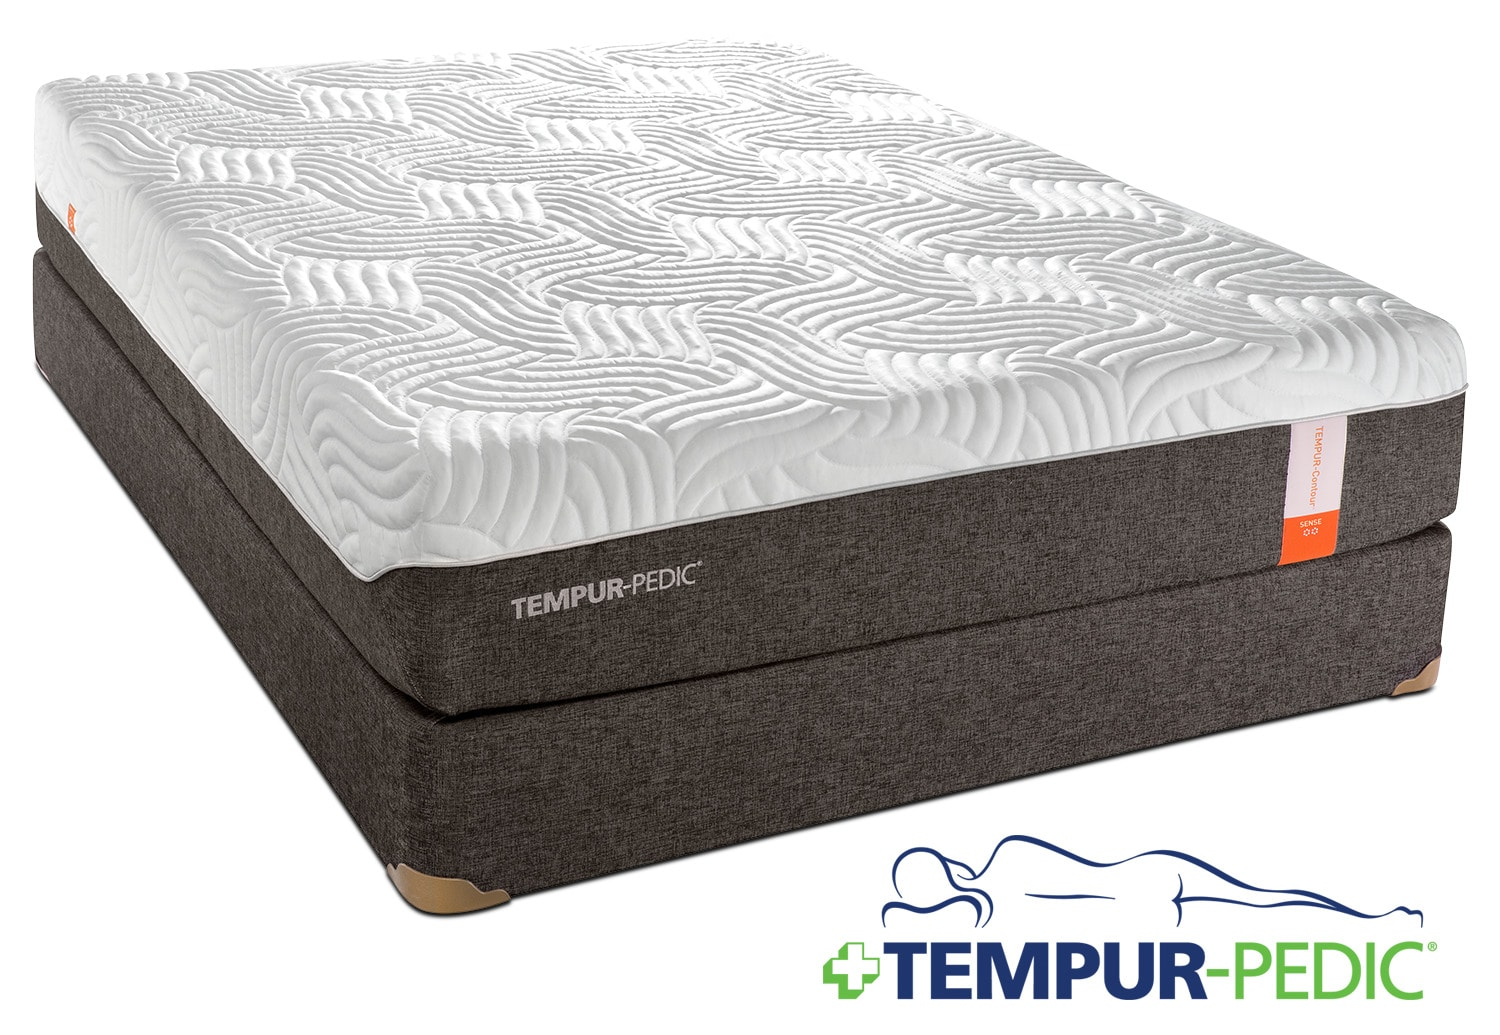 Tempur-Pedic Sense 2.0 Firm Full Mattress and Boxspring Set